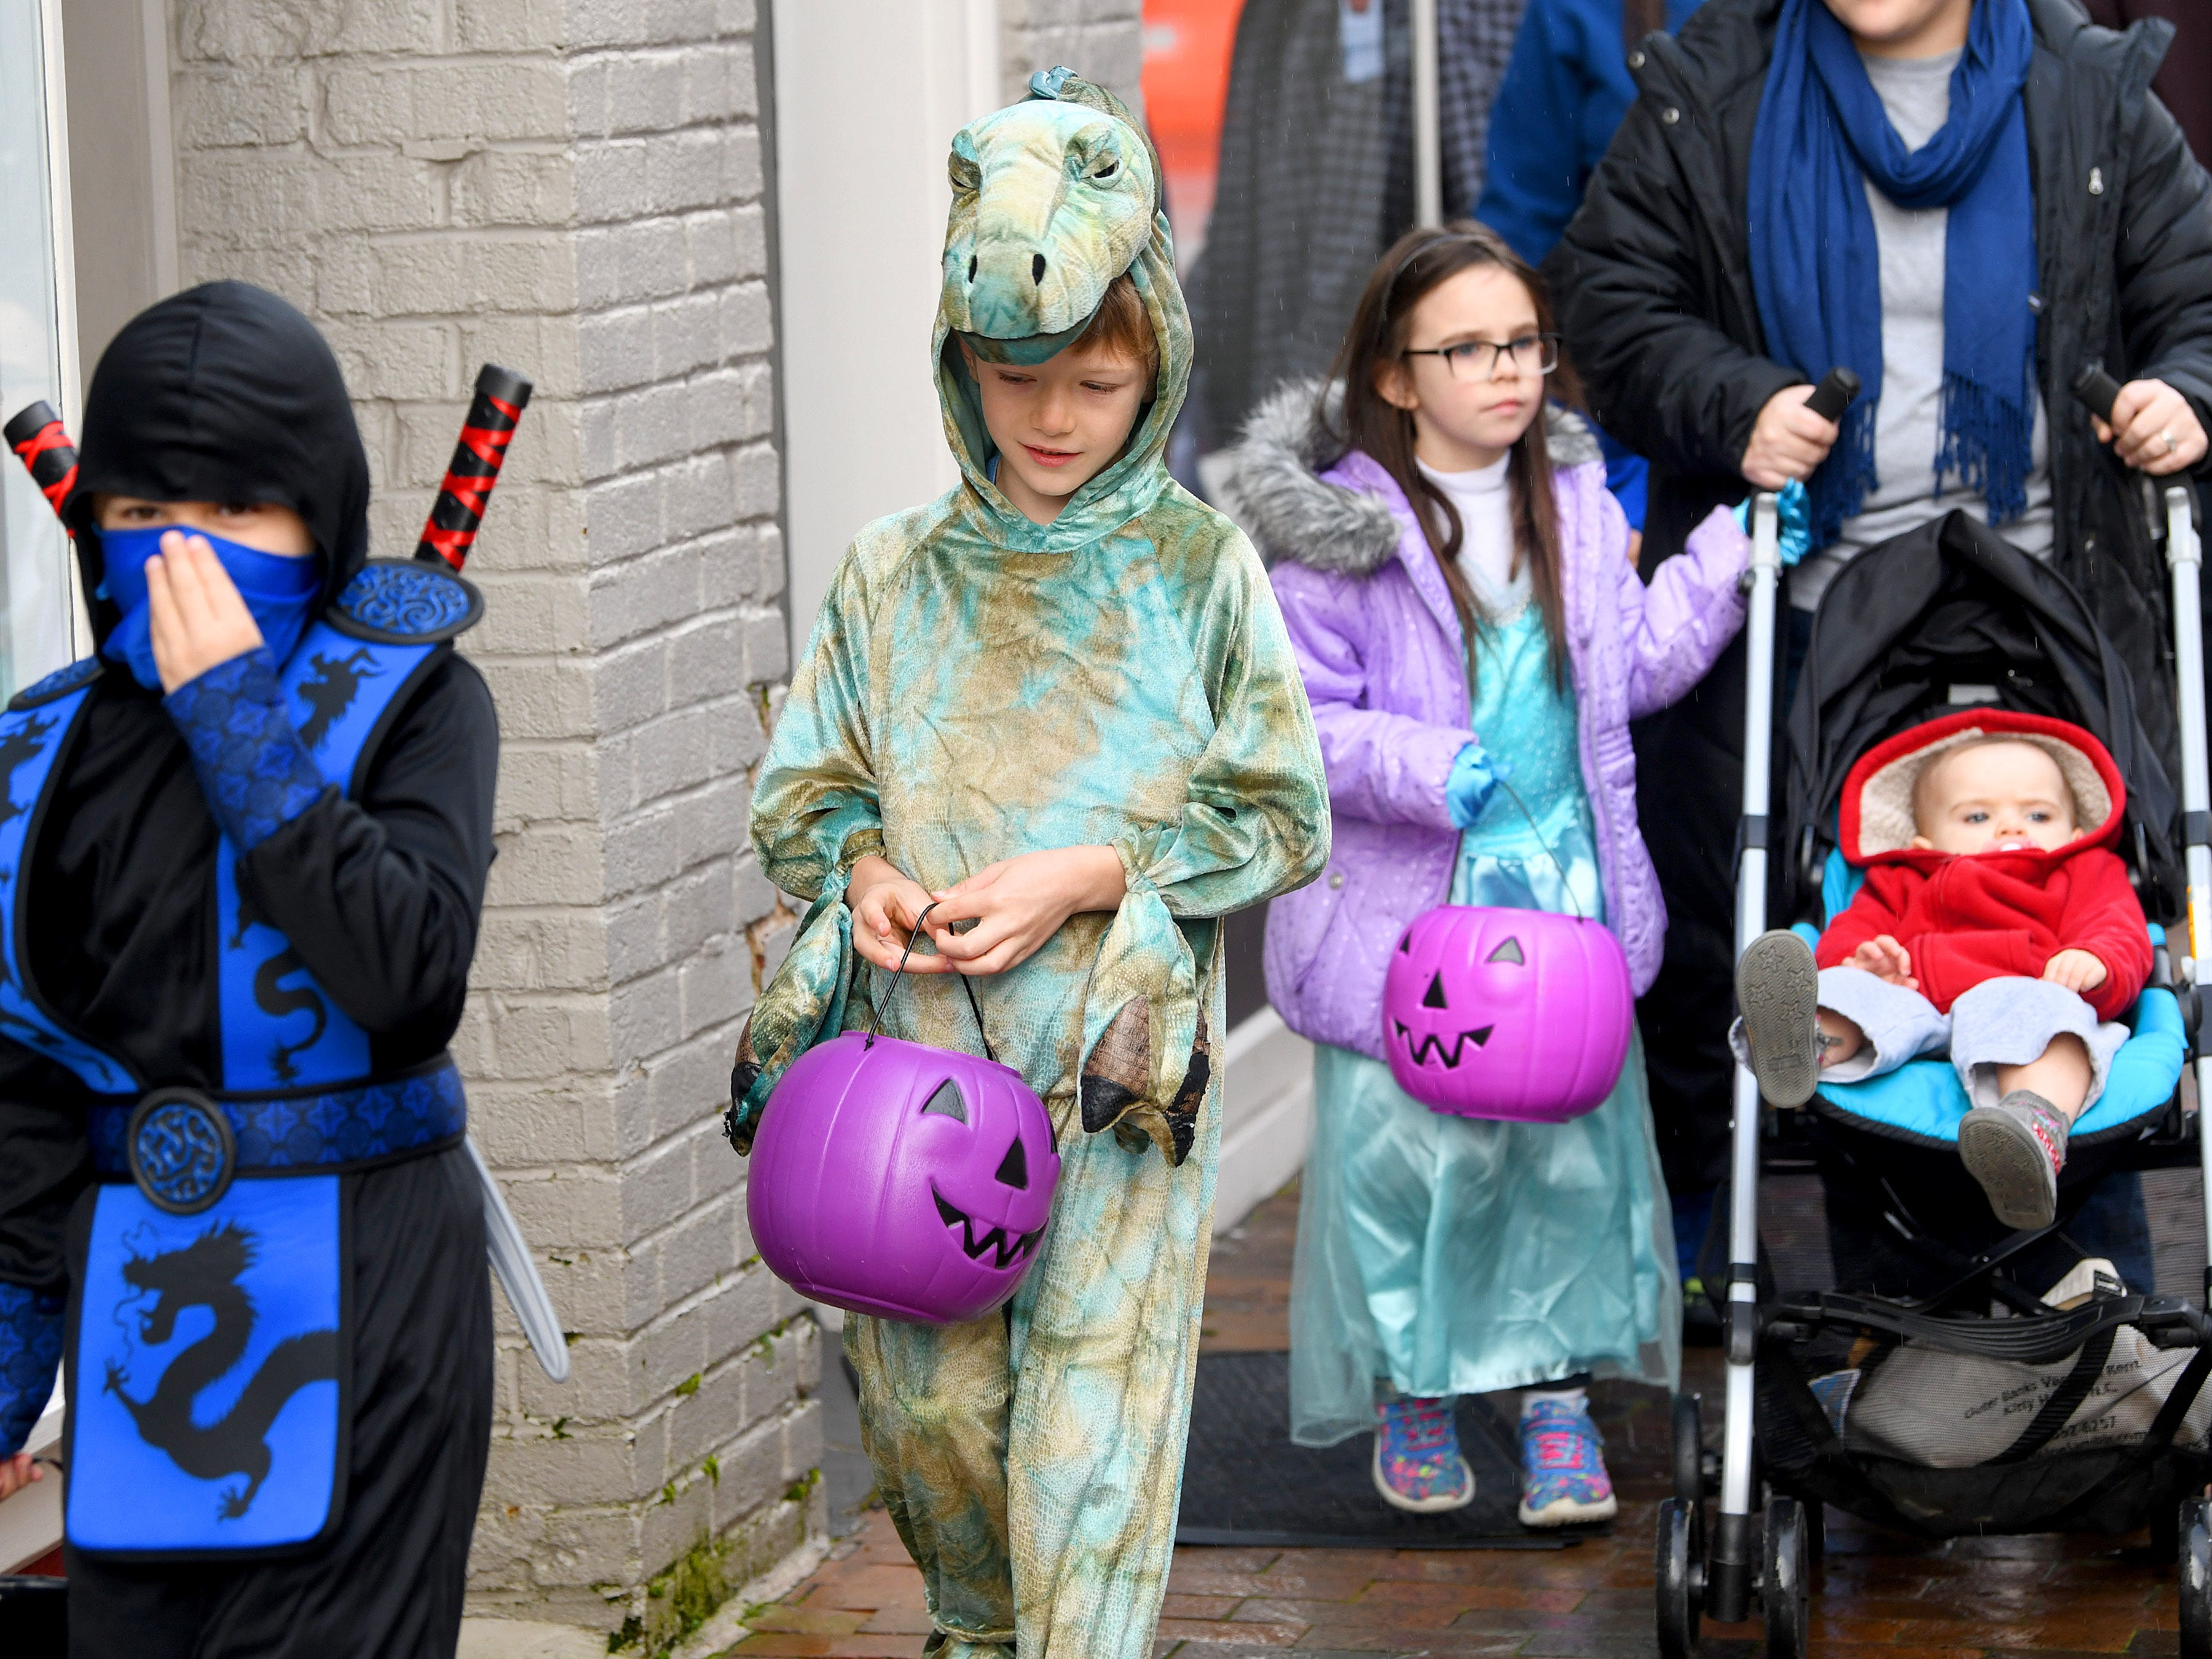 Young trick-or-treaters on a quest for treats during the annual downtown trick-or-treating event in Staunton on Saturday, Oct. 27, 2018.